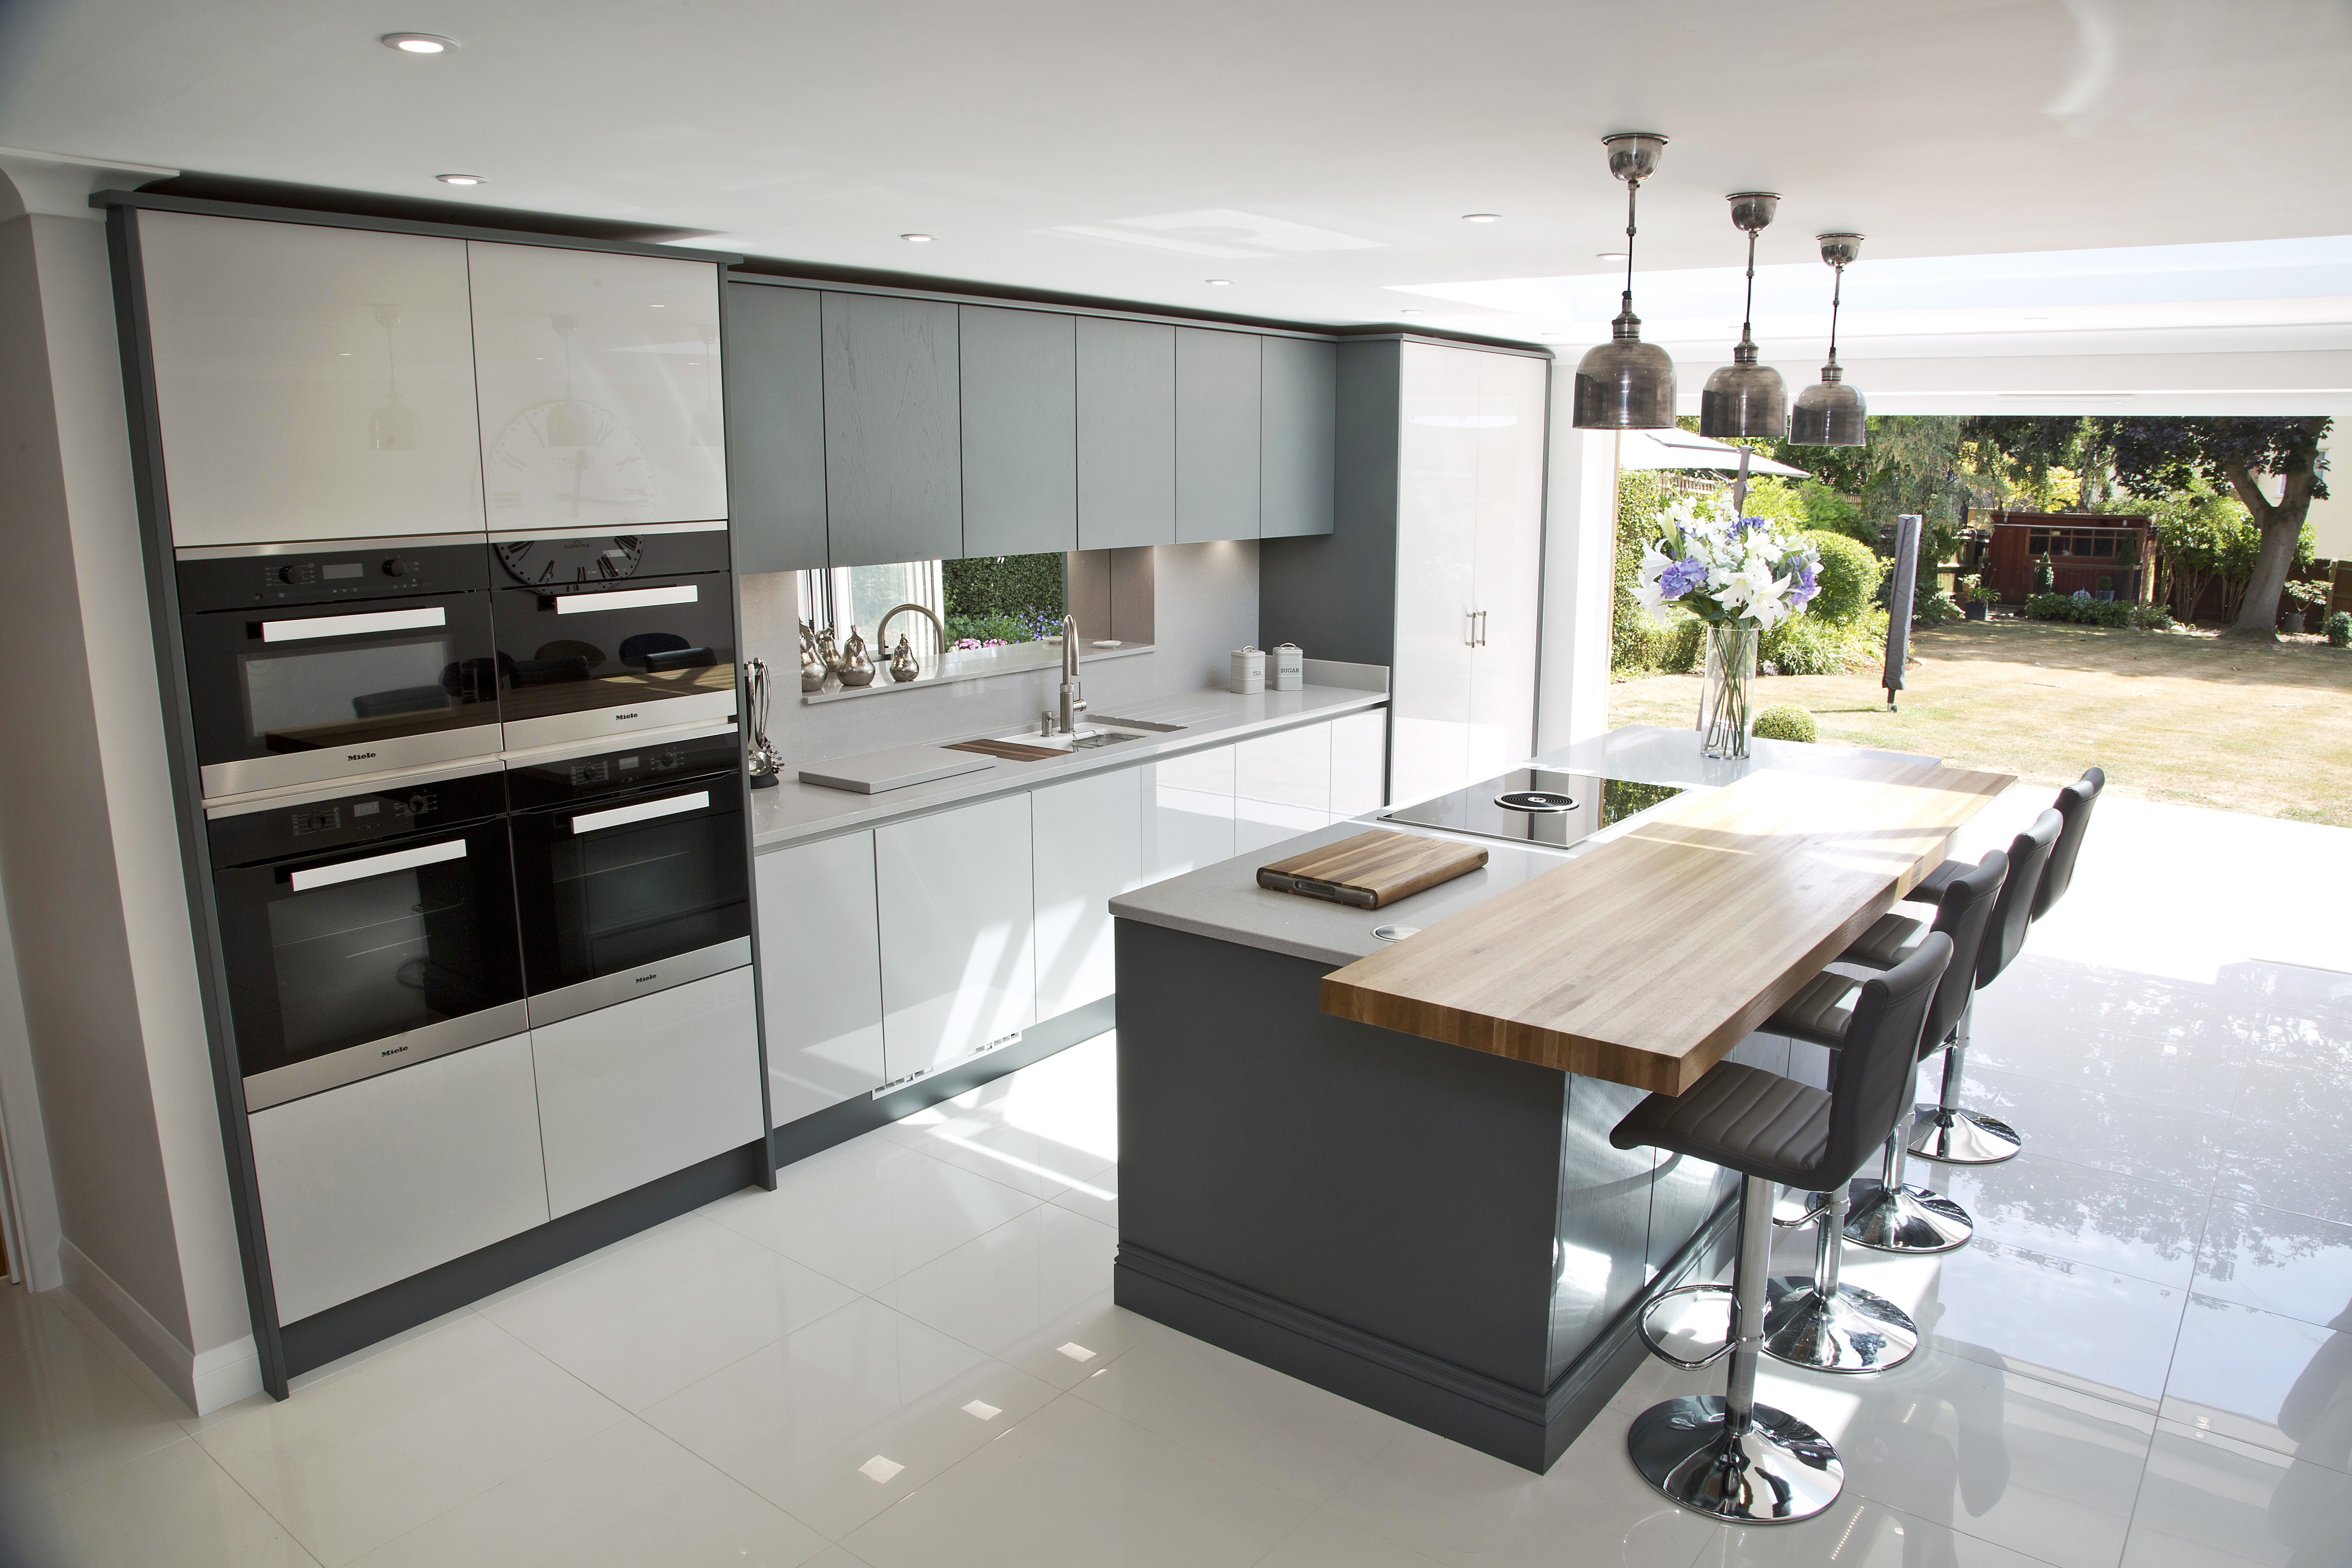 A modern family kitchen with flat doored cabinets